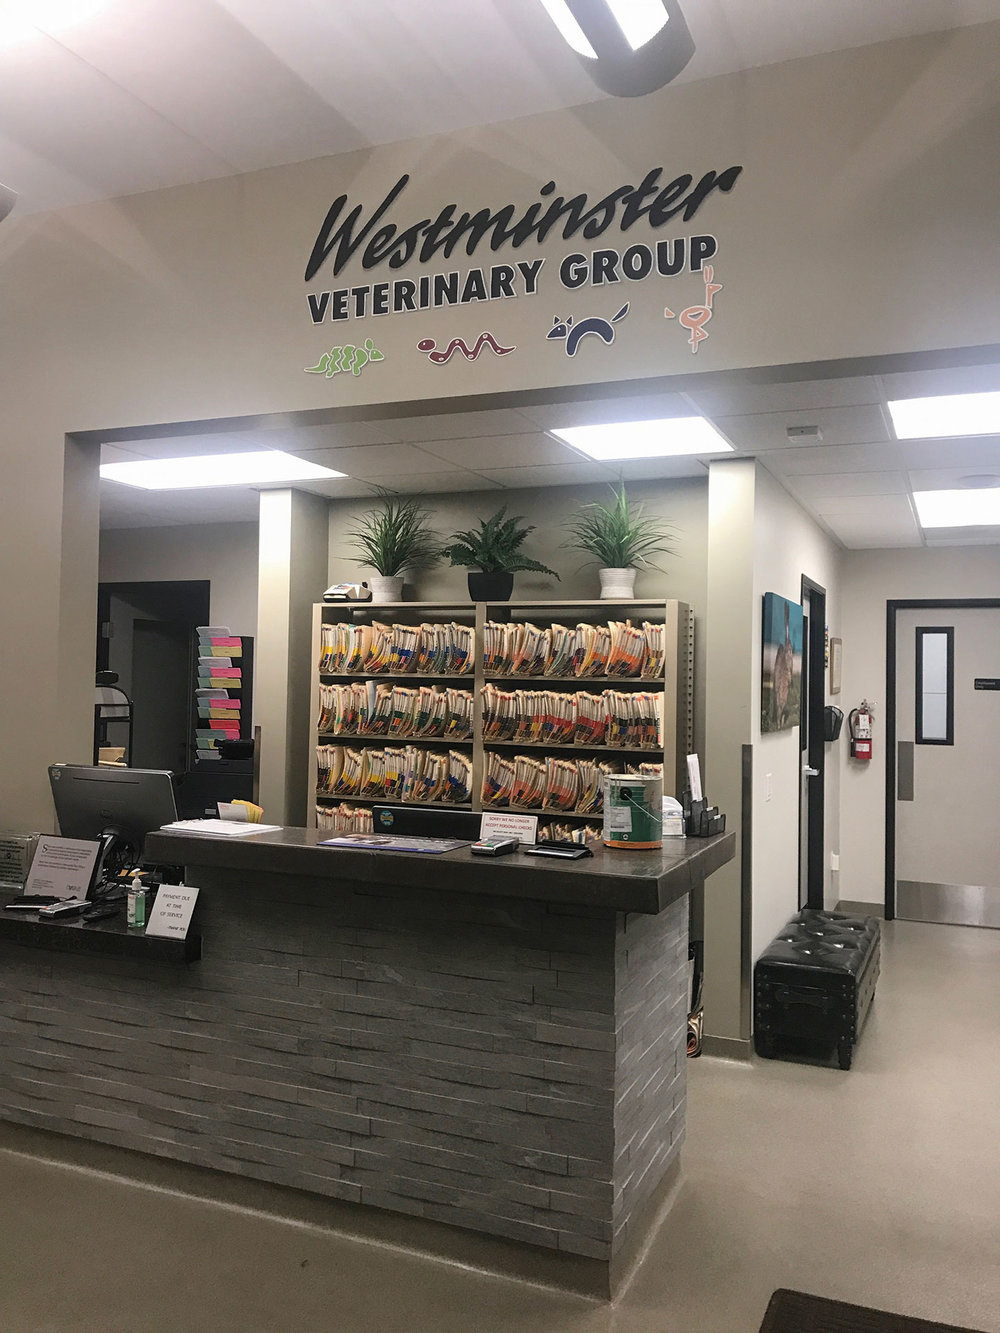 Westminster Veterinary Group